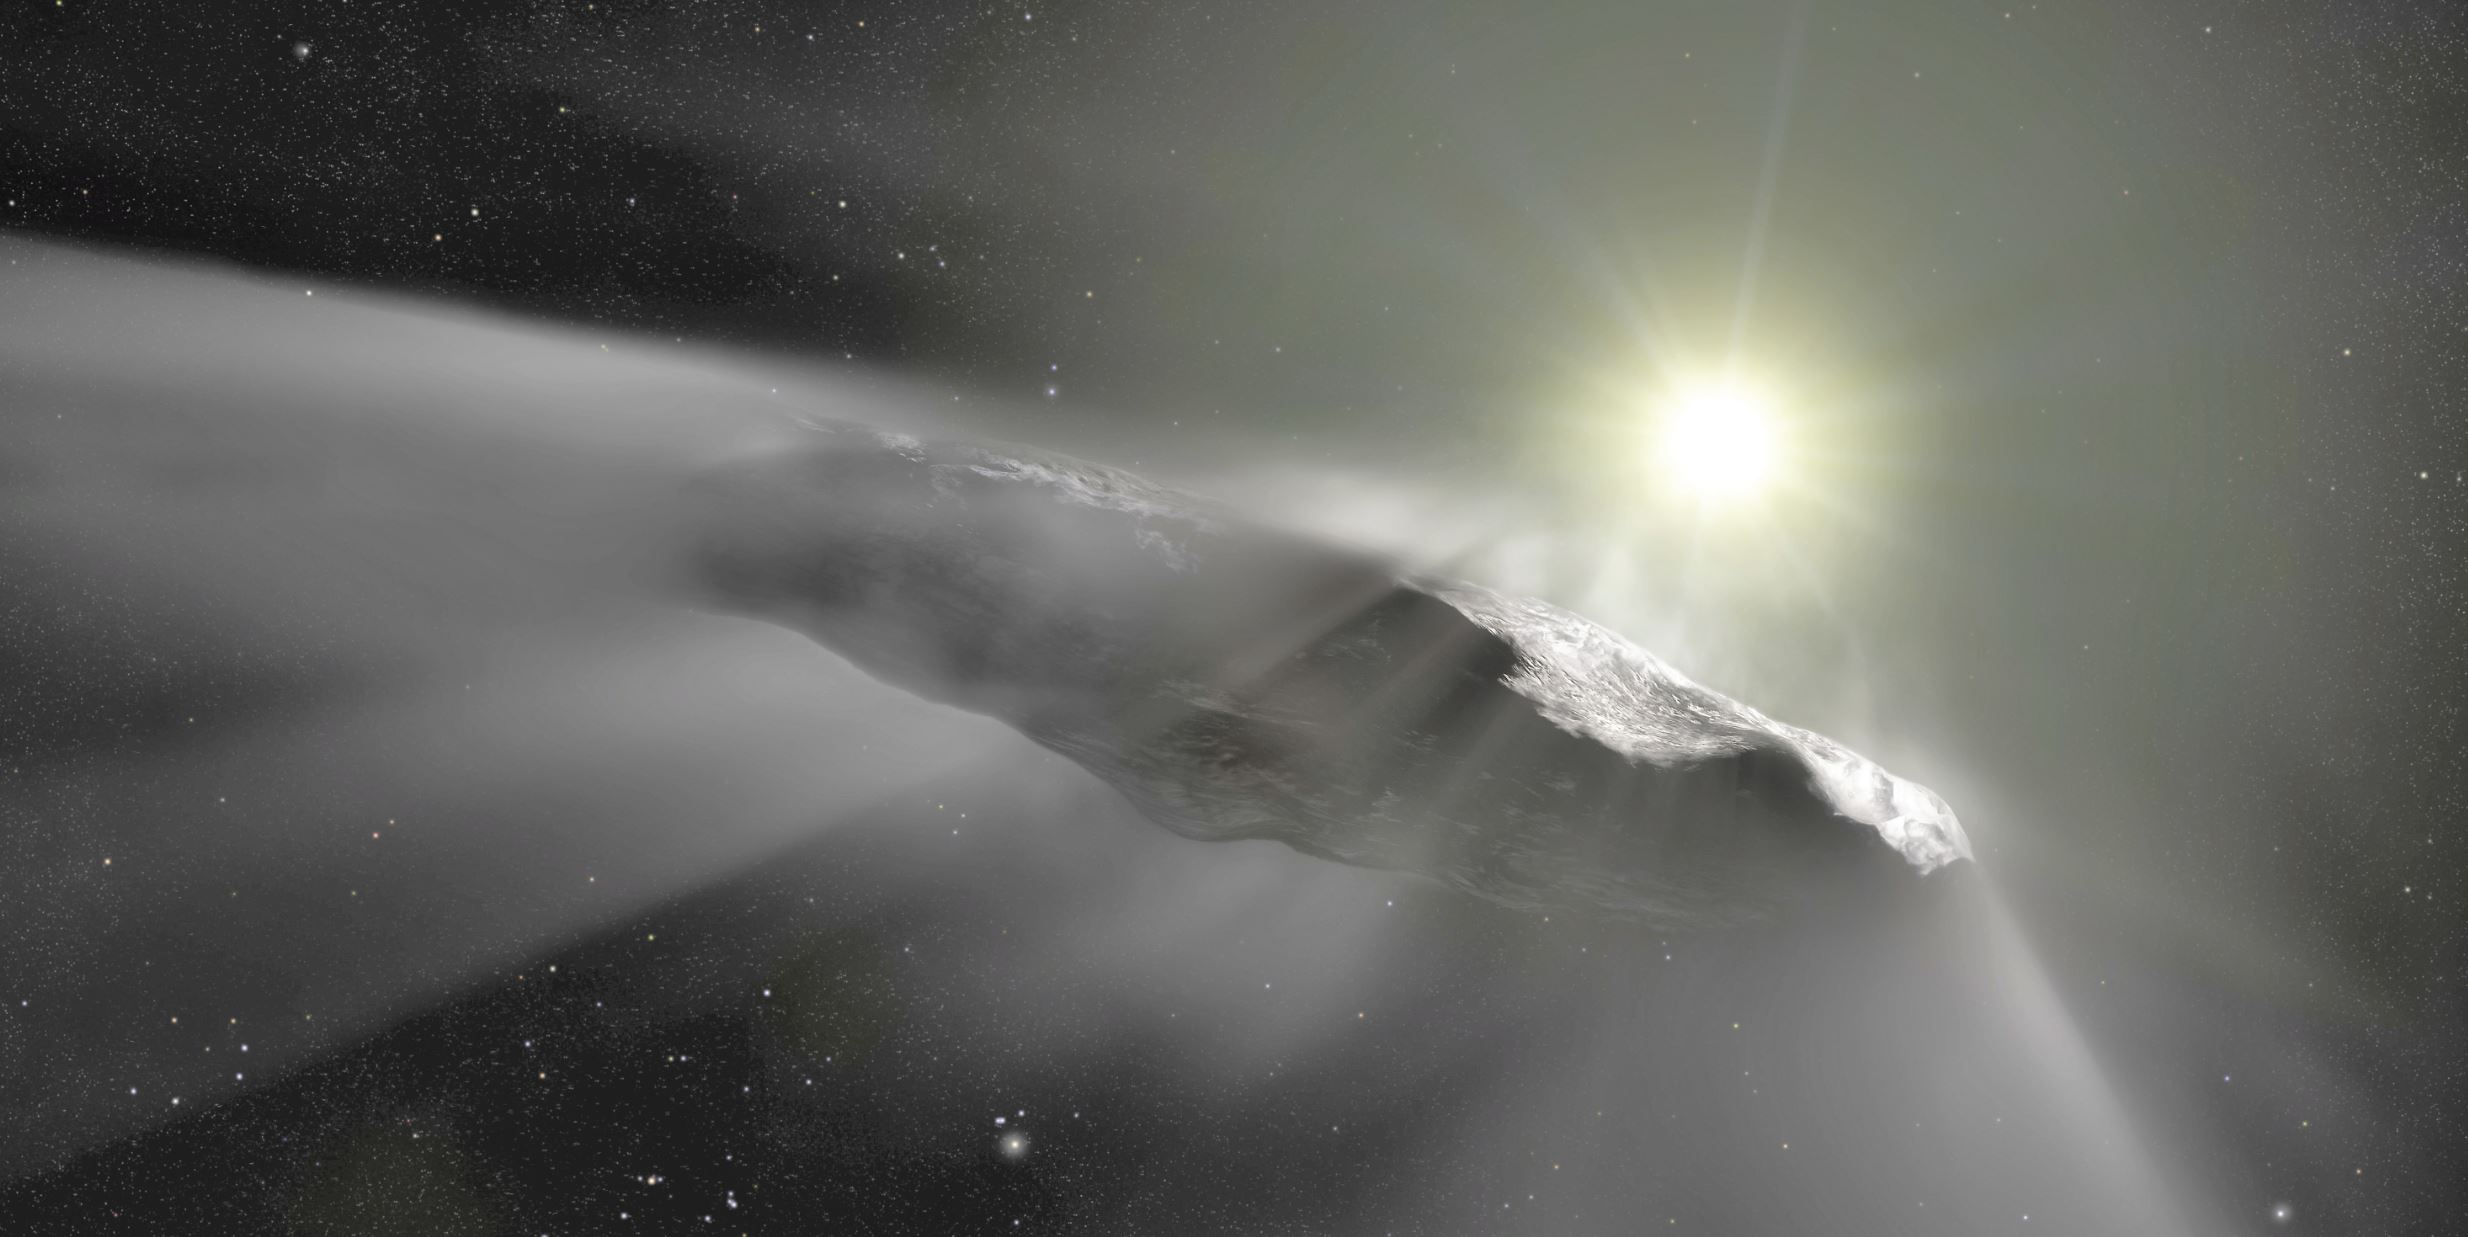 An artist's impression of `Oumuamua, the first interstellar object discovered in the Solar System. - Image Credit:  ESA/Hubble, NASA, ESO, M. Kornmesser ,  CC BY